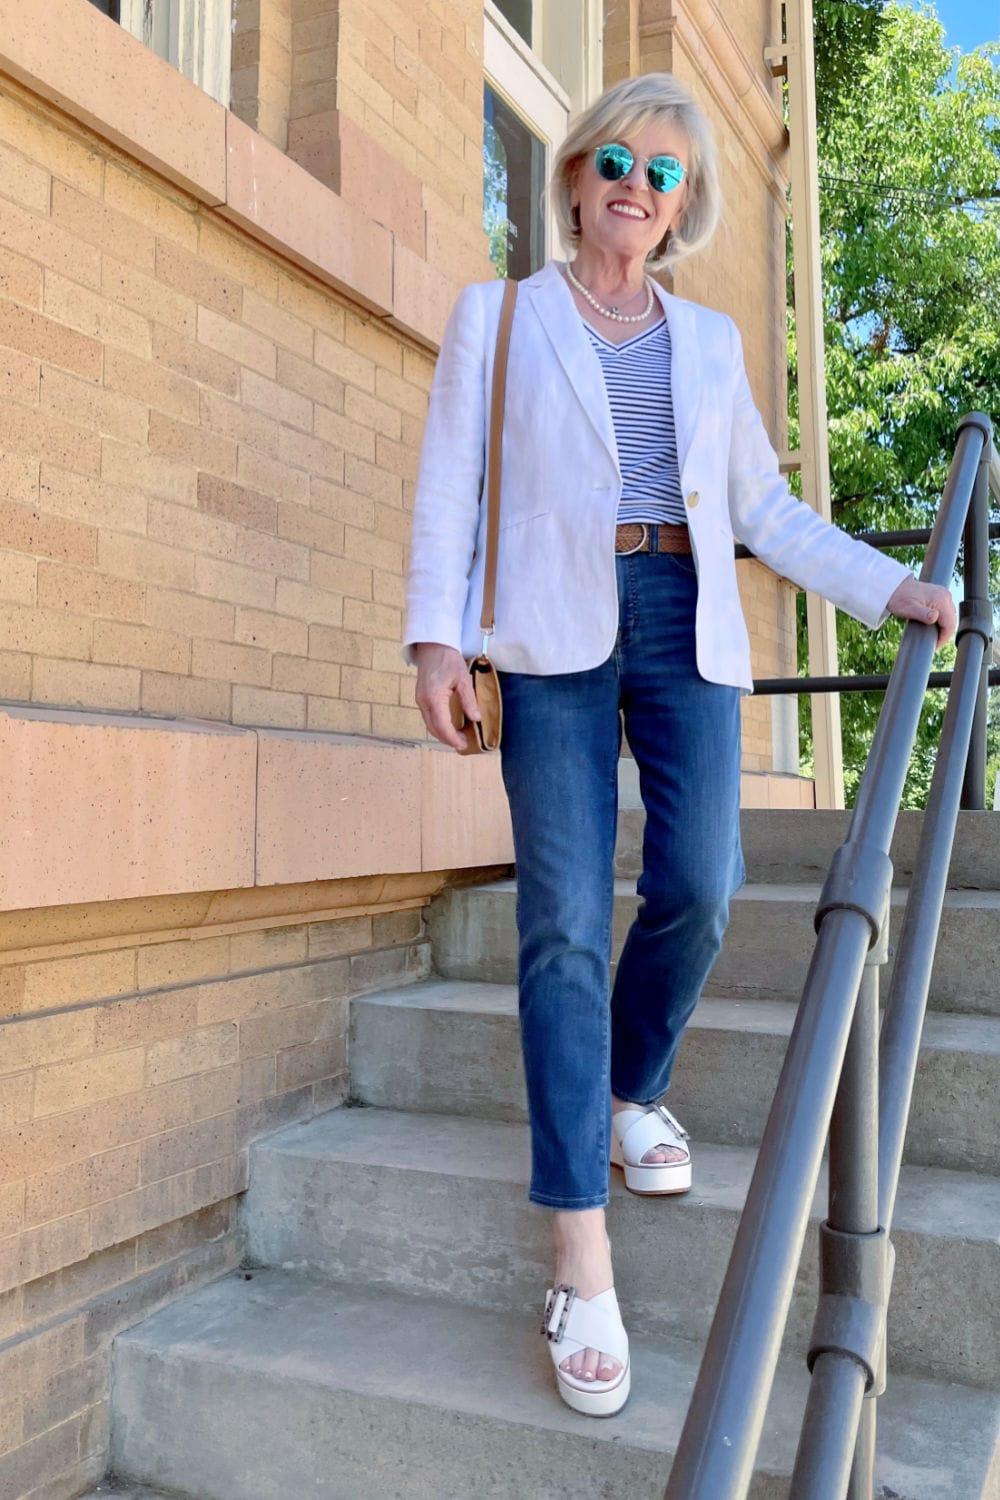 blonde woman walking downstairs weaing linen blazer and blue jeans with white sandals